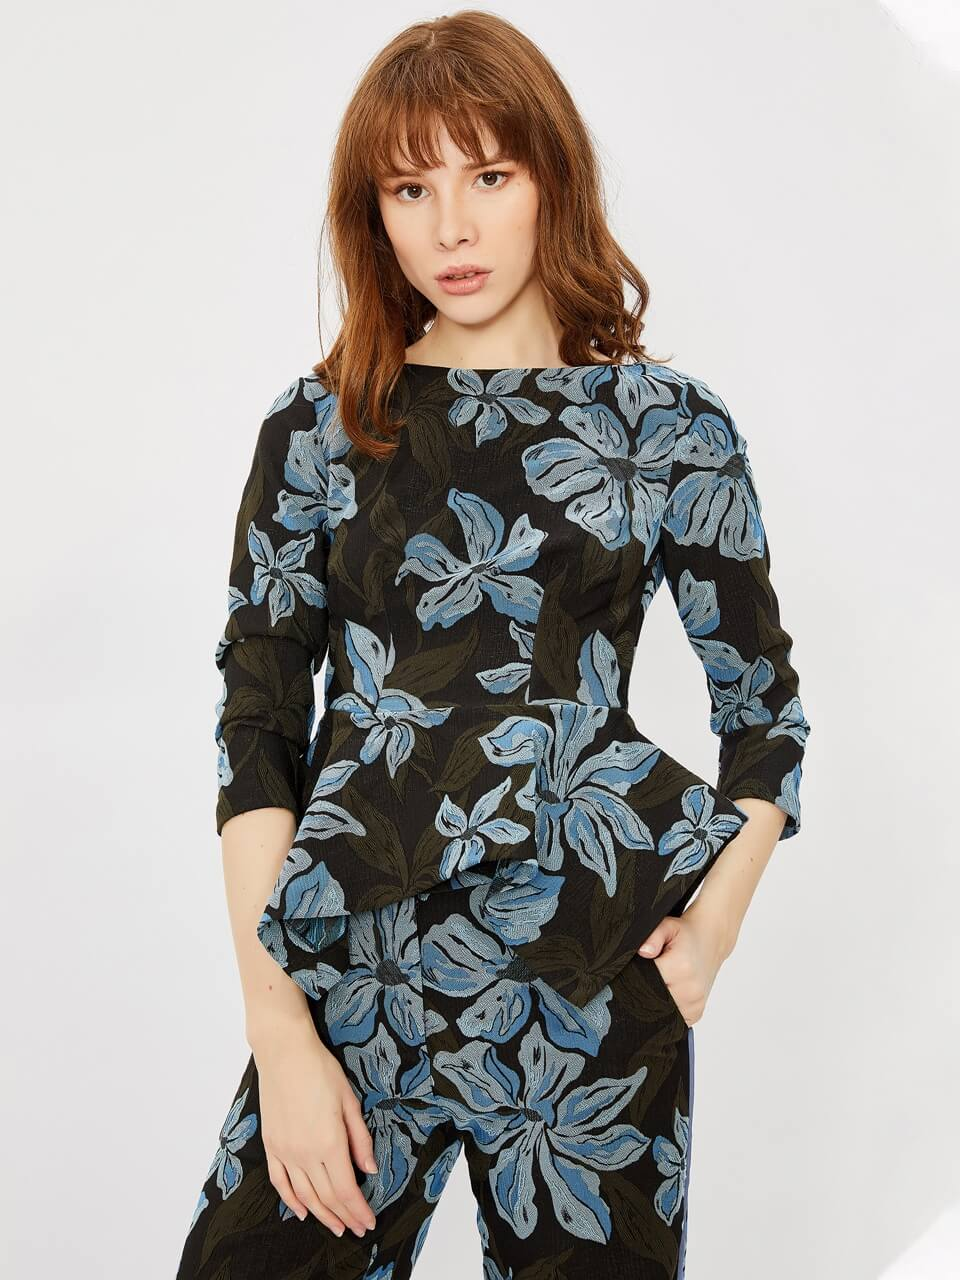 Floral Patterned Blouse With Jacquared